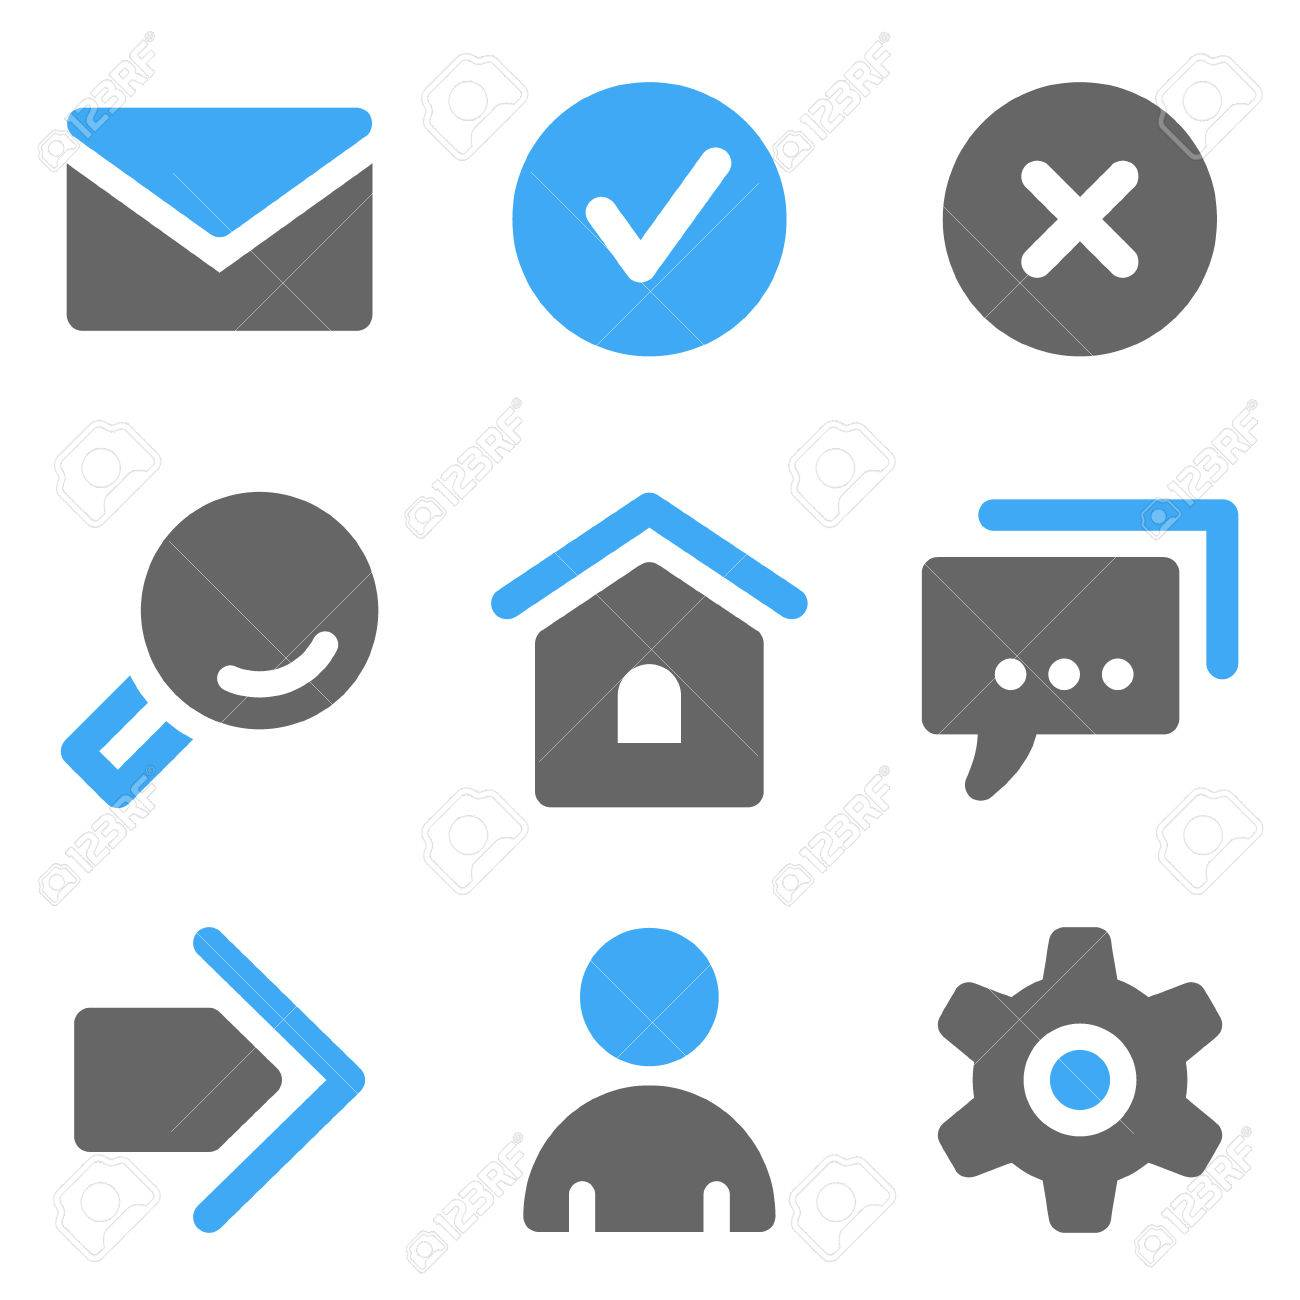 Basic web icons, blue and grey solid icons Stock Vector - 7935996